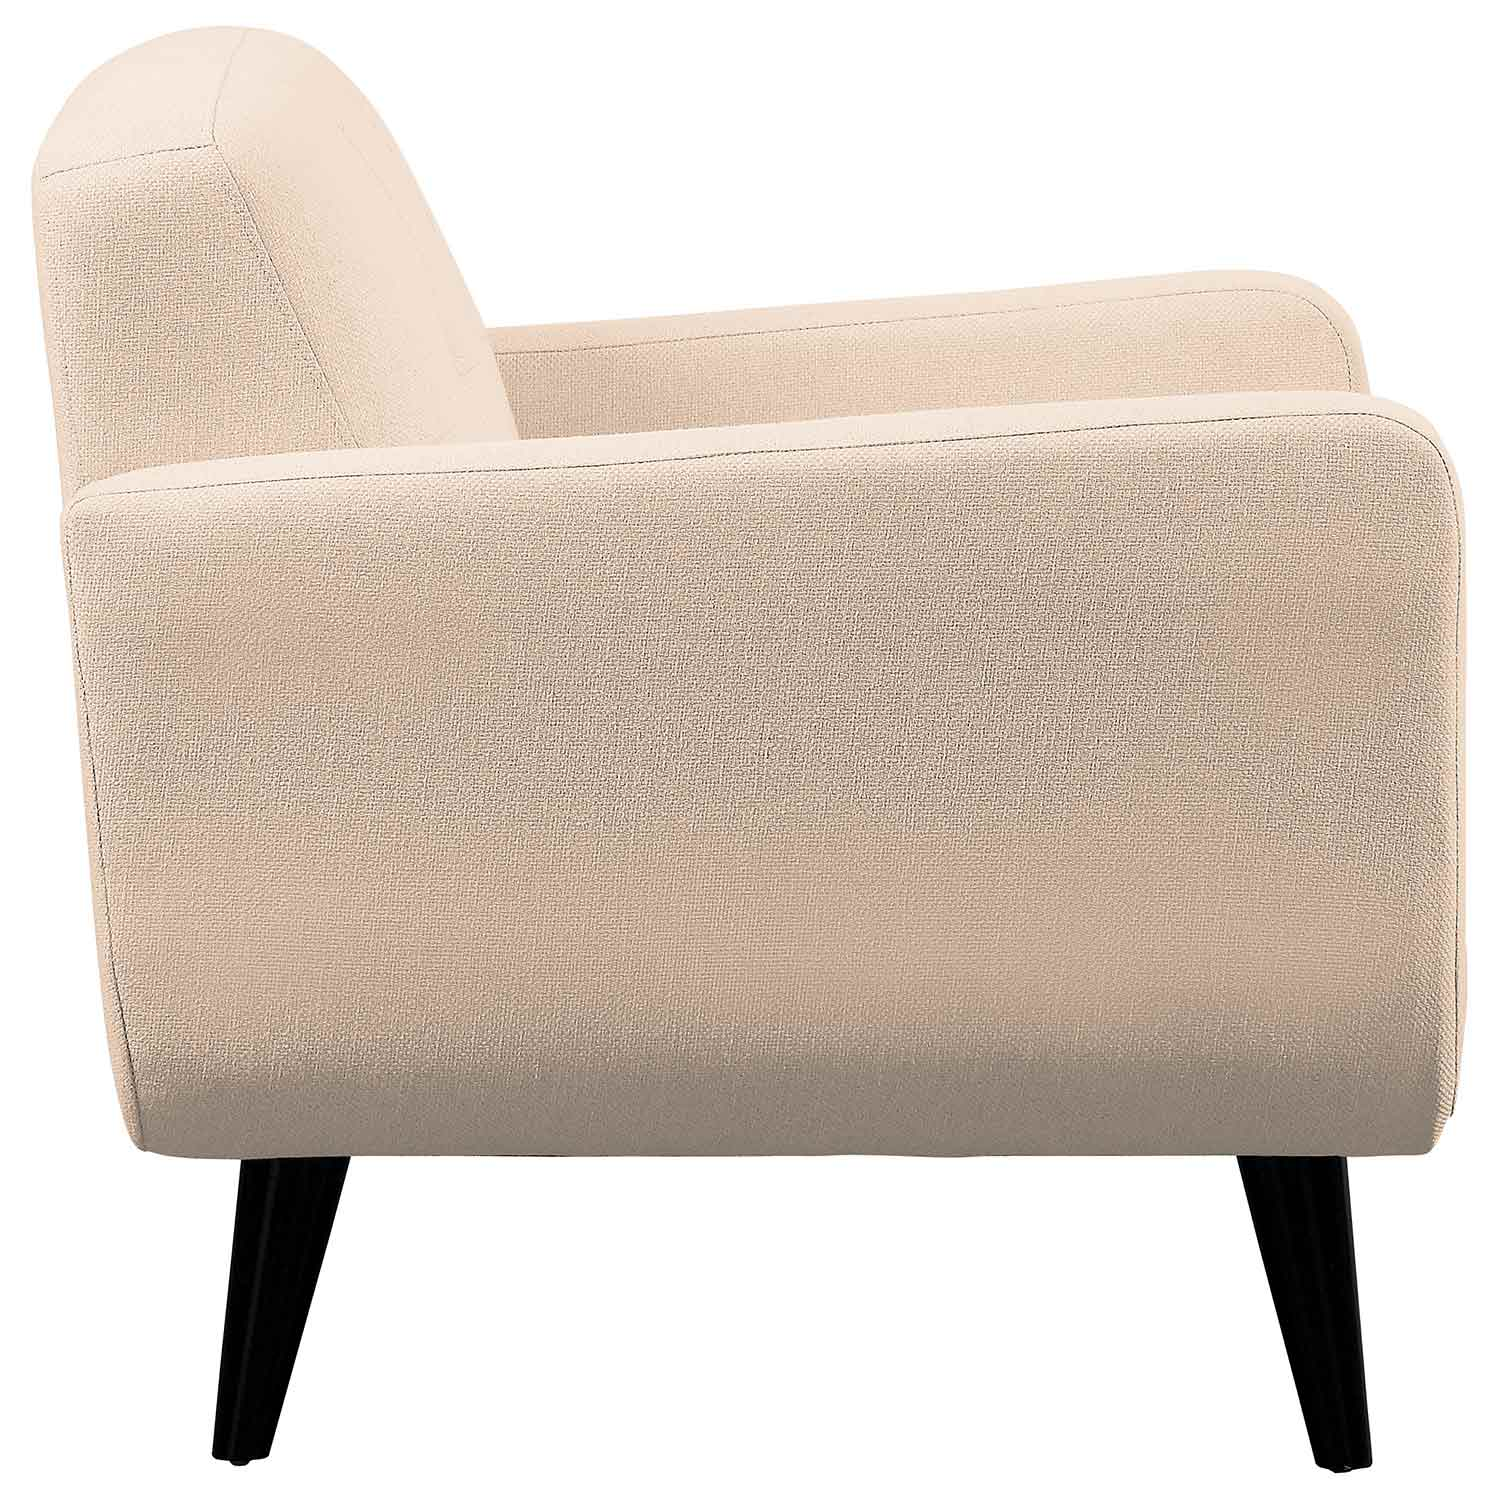 Homelegance Monroe Chair - Beige